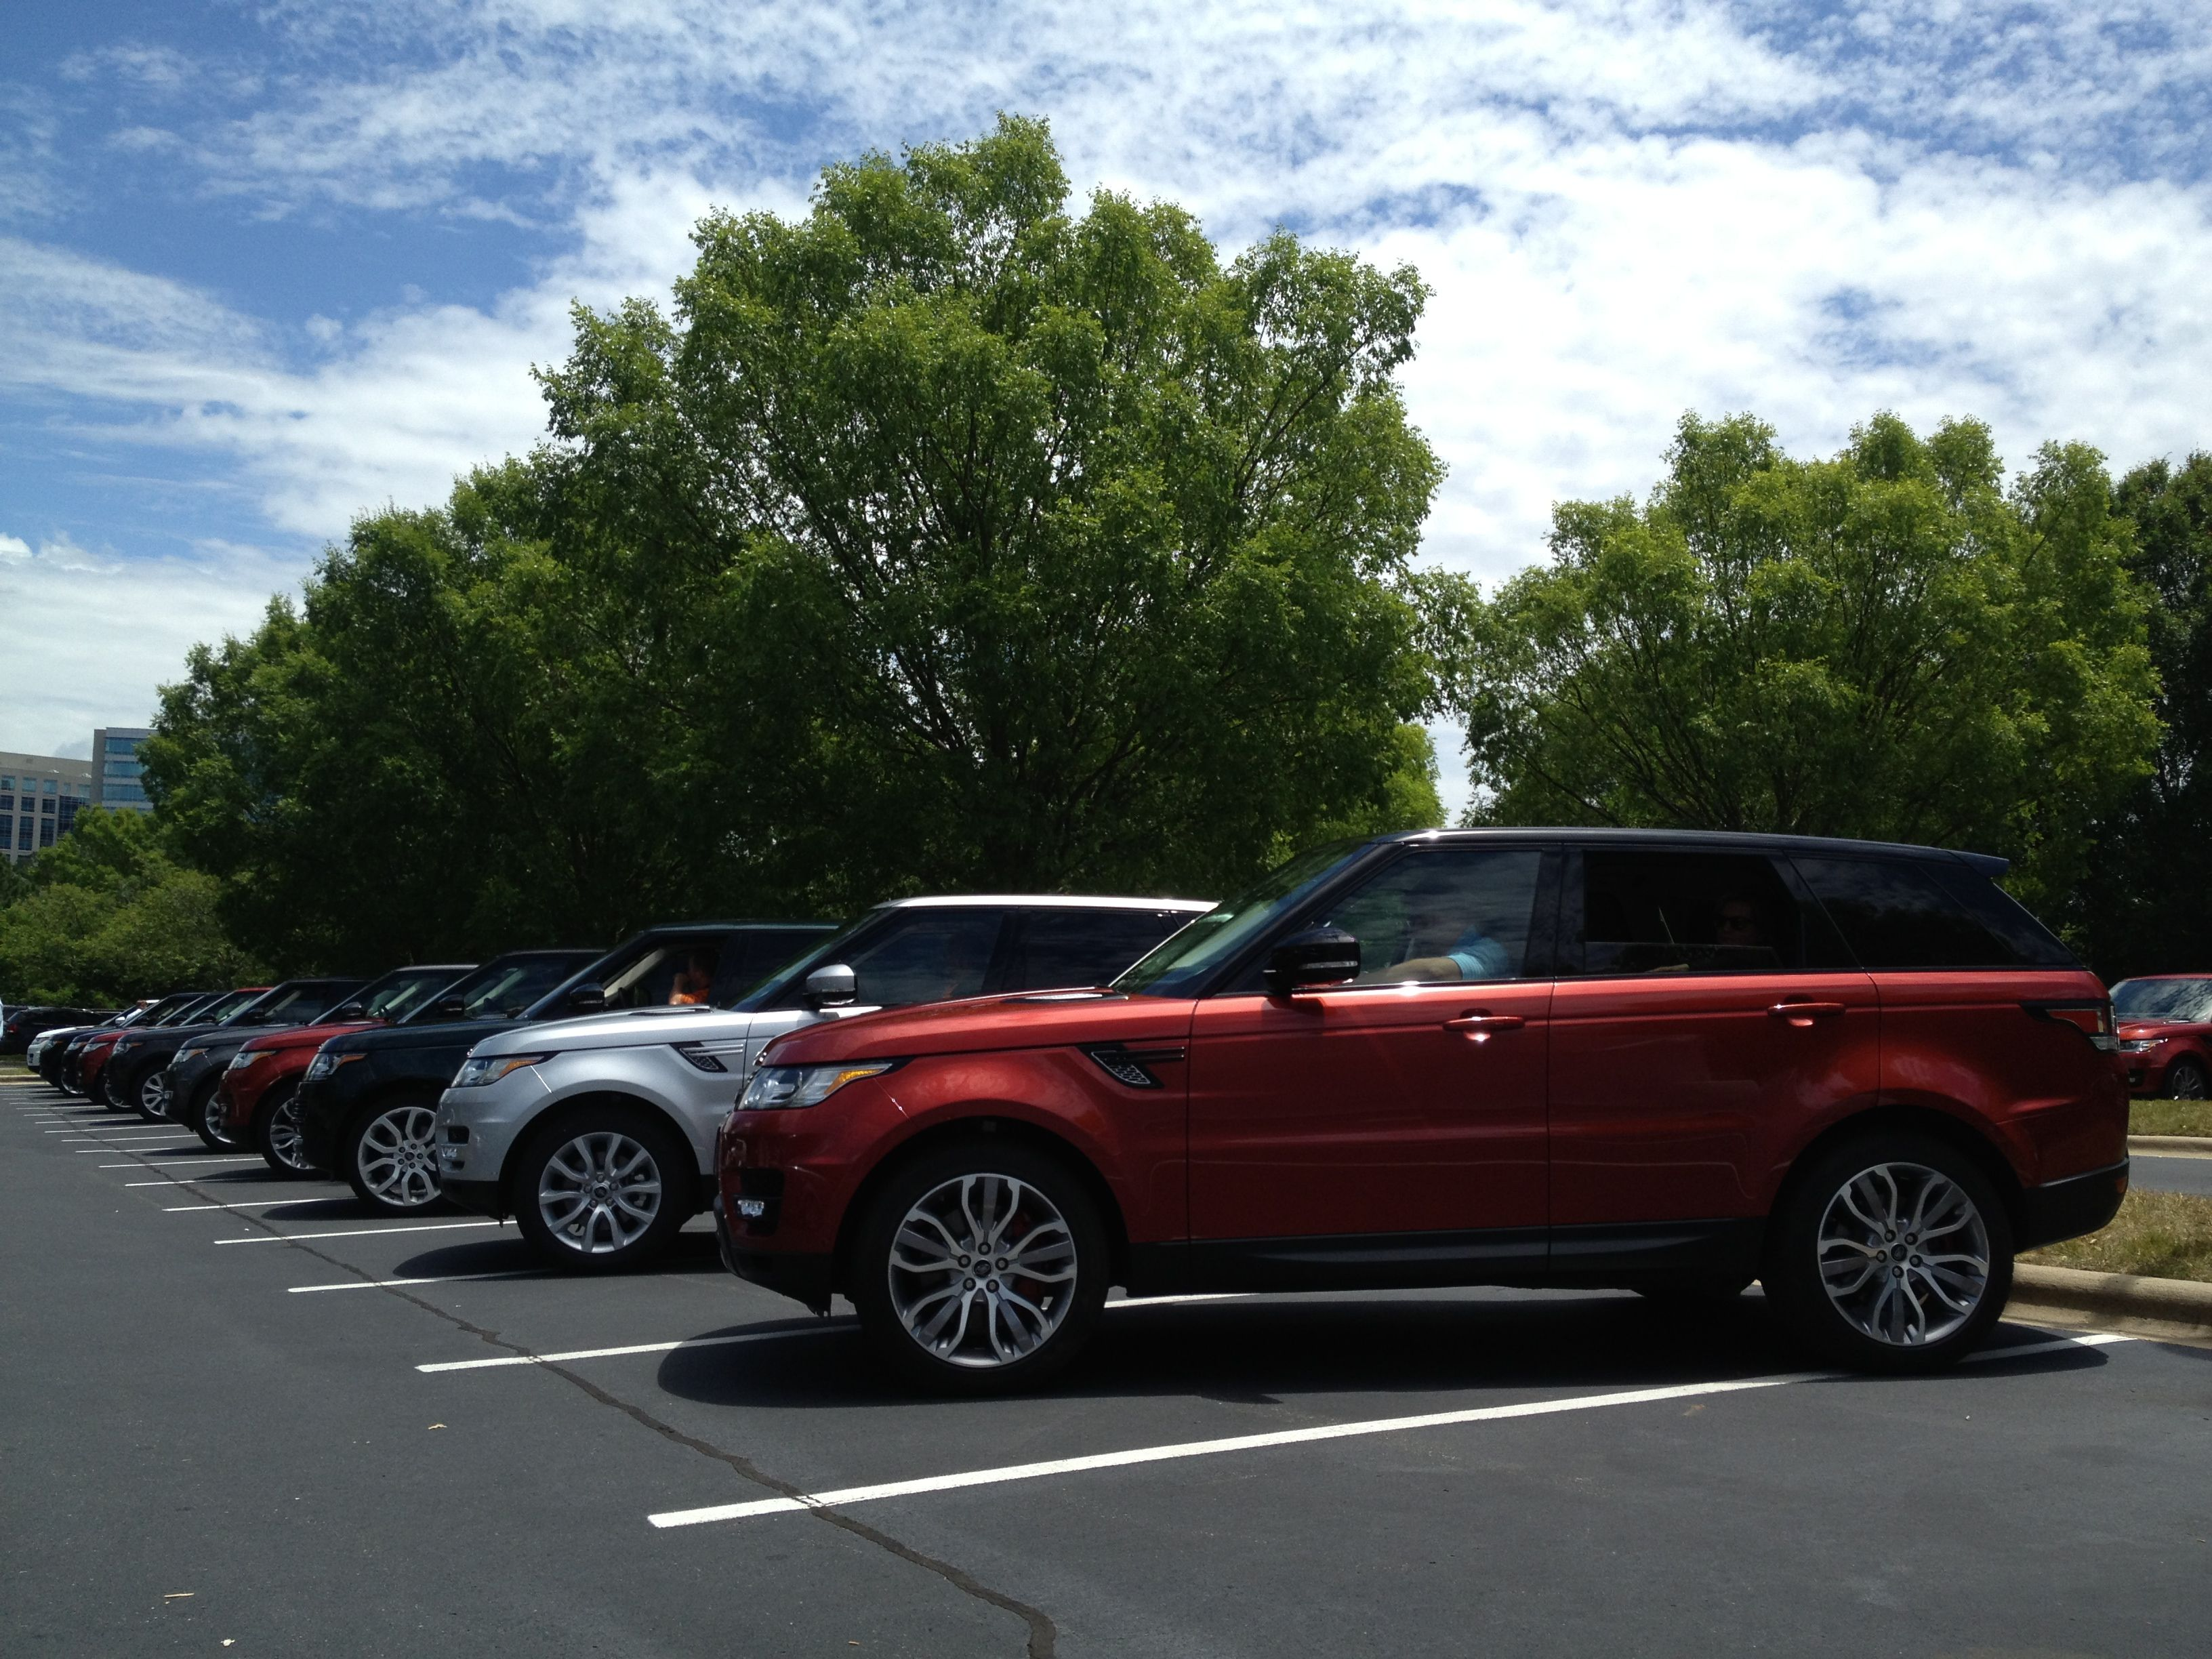 Land Rover Palm Beach at the 2014 Range Rover Sport training in NC